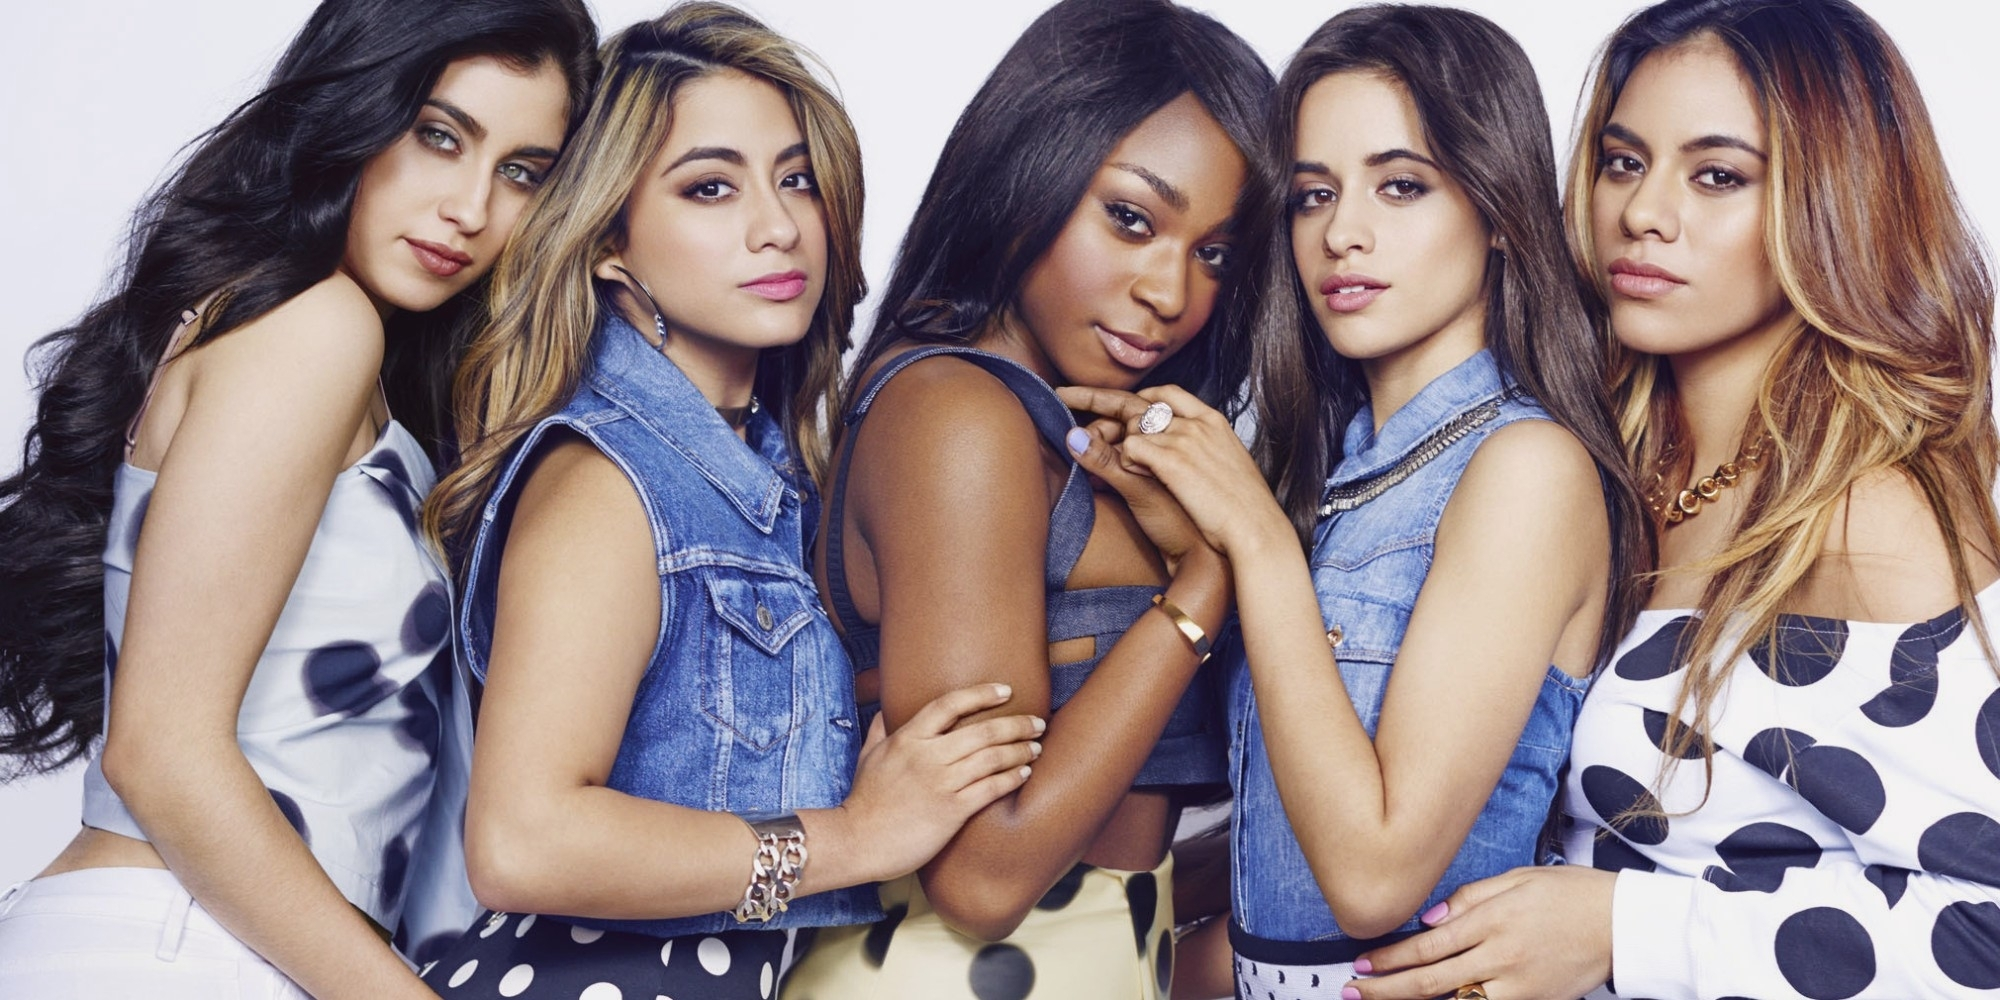 10 Most Popular Fifth Harmony Wallpaper 2015 FULL HD 1920×1080 For PC Background